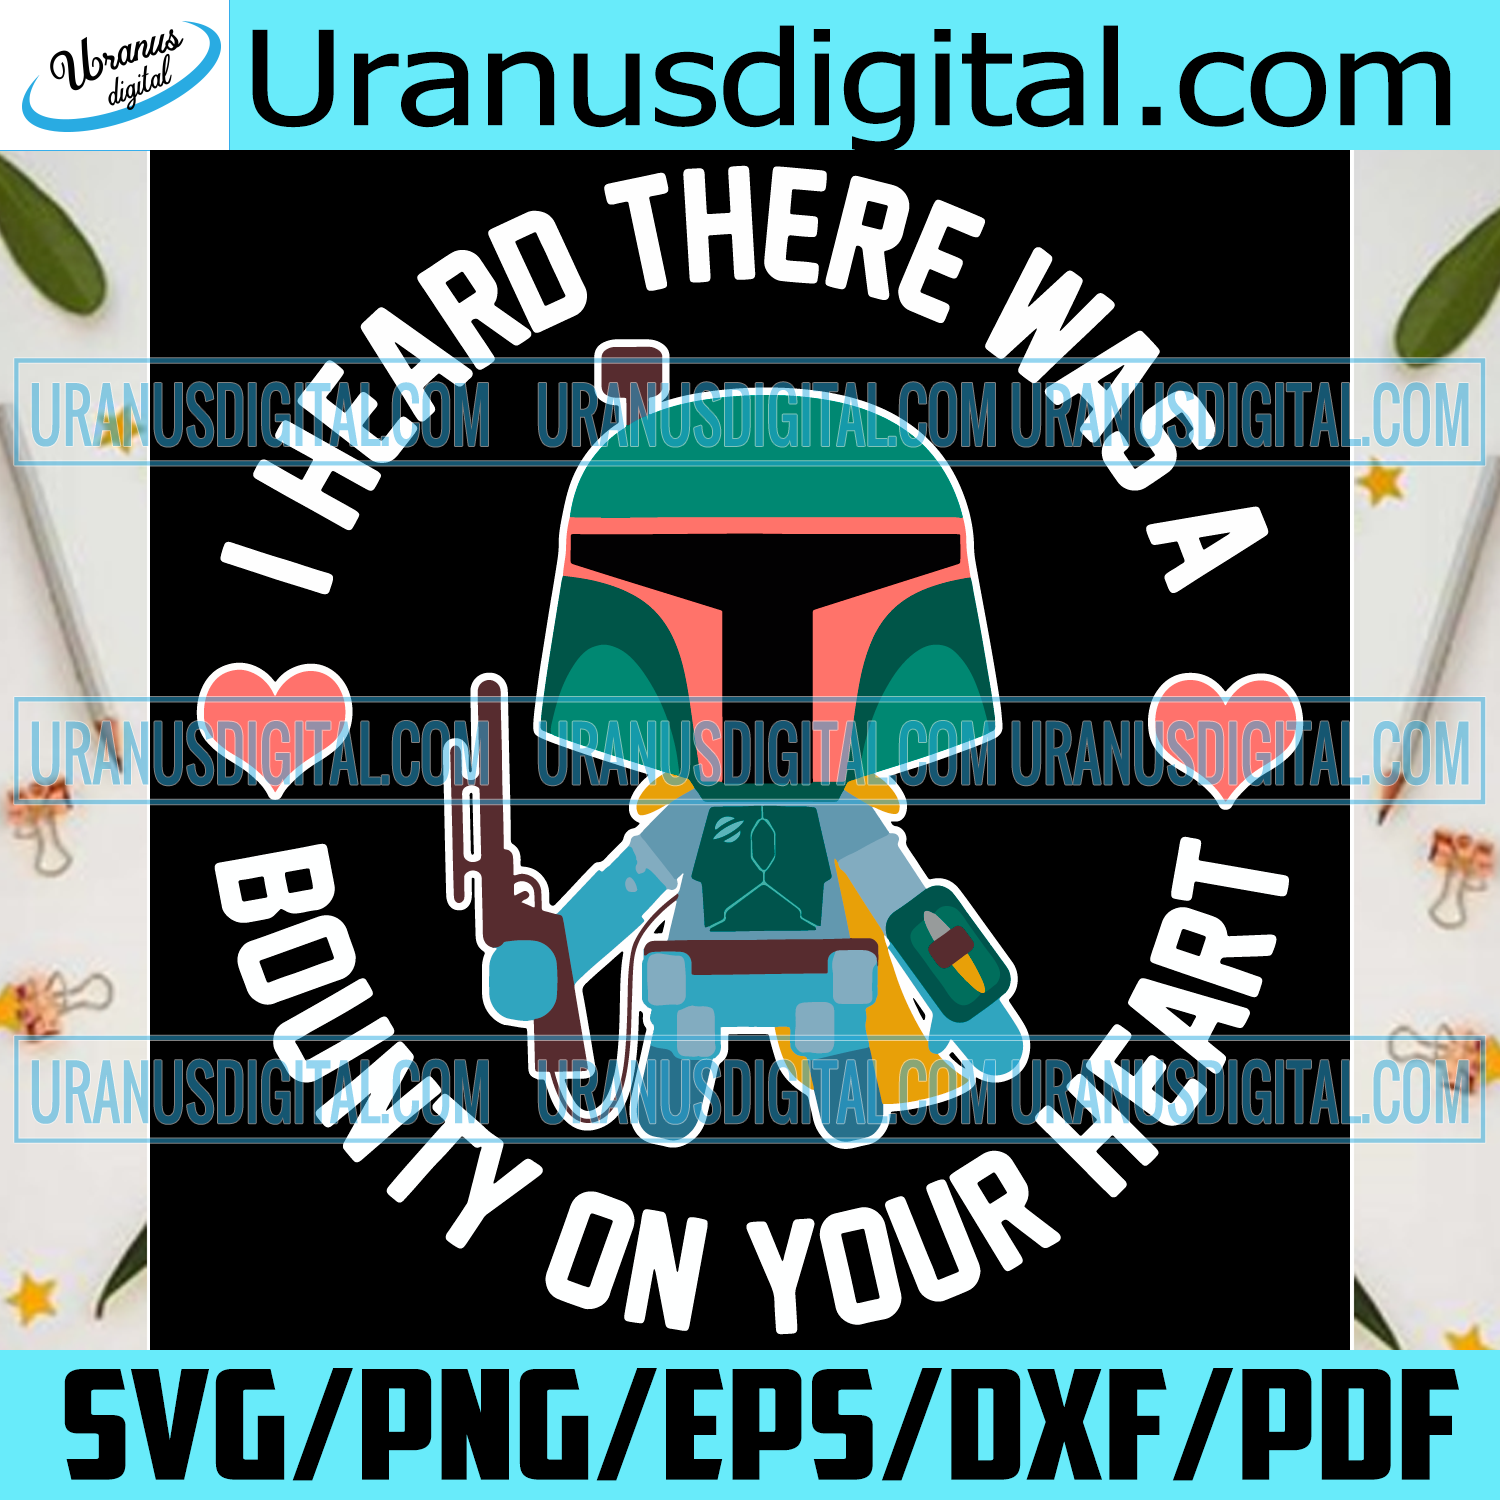 I Heard There Was A Bounty On Your Heart Svg, Trending Svg, Mandalorian Svg, Boba Fett Svg, Valentine Svg, Valentines Day Svg, Valentine Boba Fett, Valentine Star Wars, Star Wars Svg, Valentines Gifts